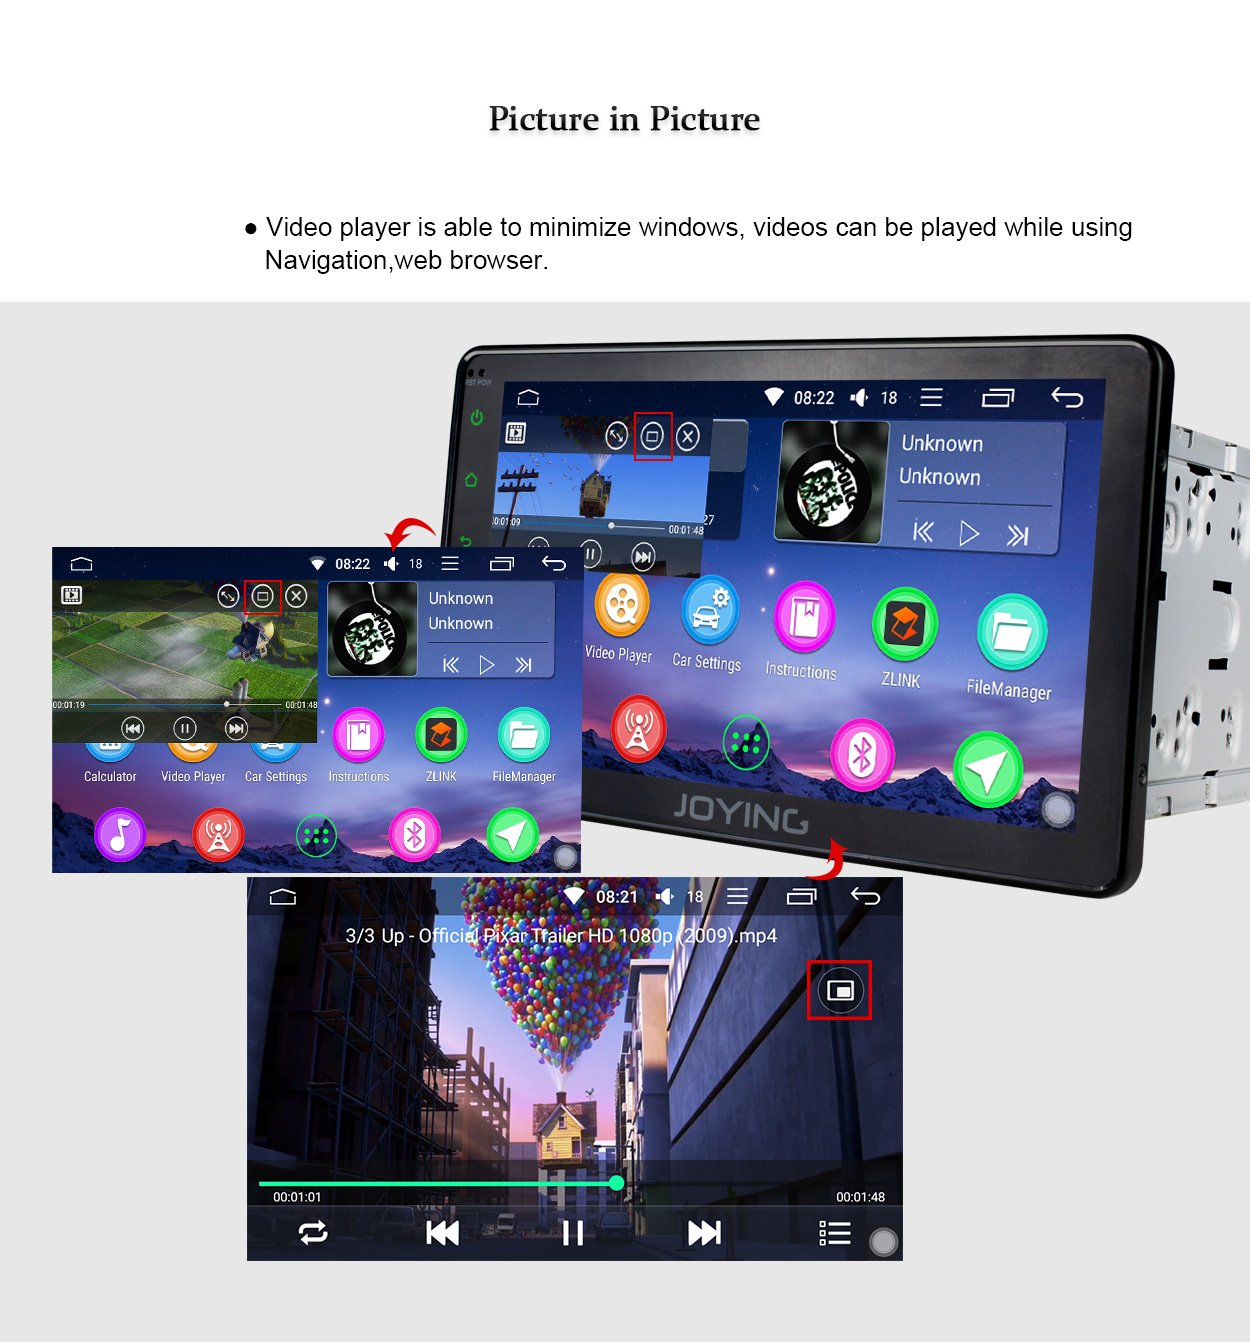 JOYING Car Stereo 8 inch PX5 Octa-Core 2GB RAM 32GB ROM Double Din  Universal Car radio with Bluetooth Music & Sleep Mode Function - Support  iPhone